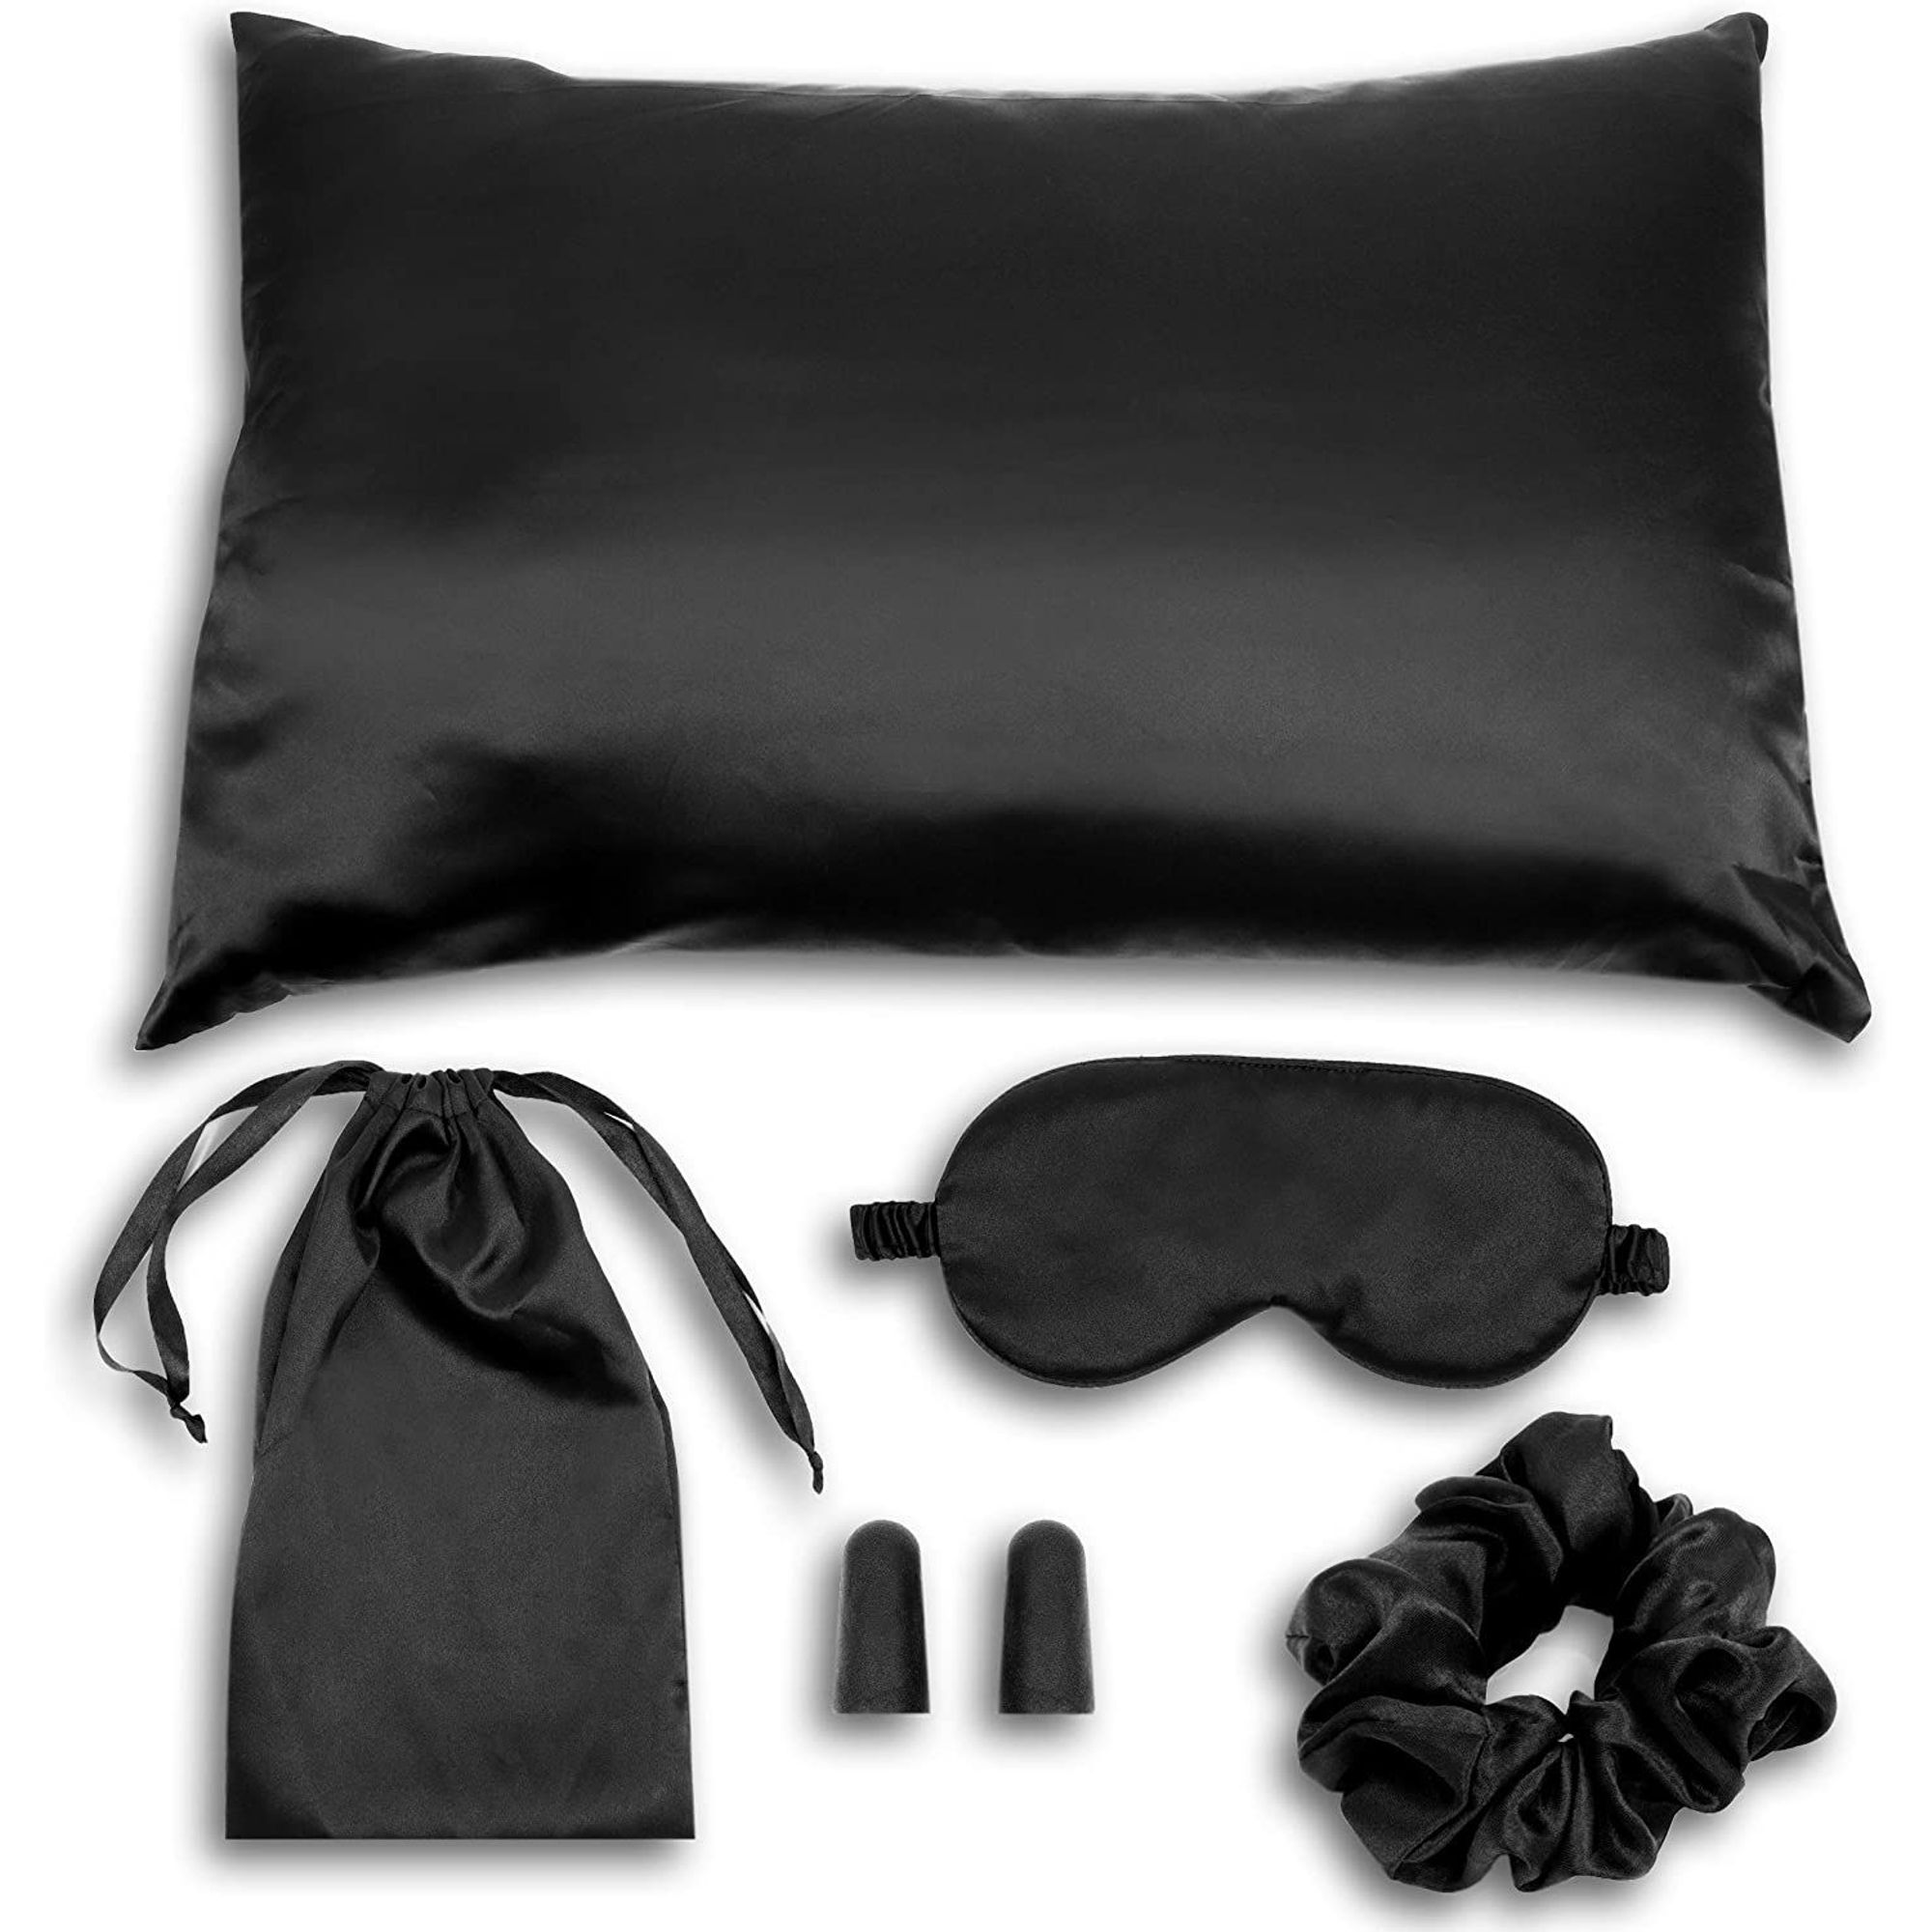 zodaca travel sleeping kit accessories includes pillow cover eye mask ear plugs scrunchie black satin